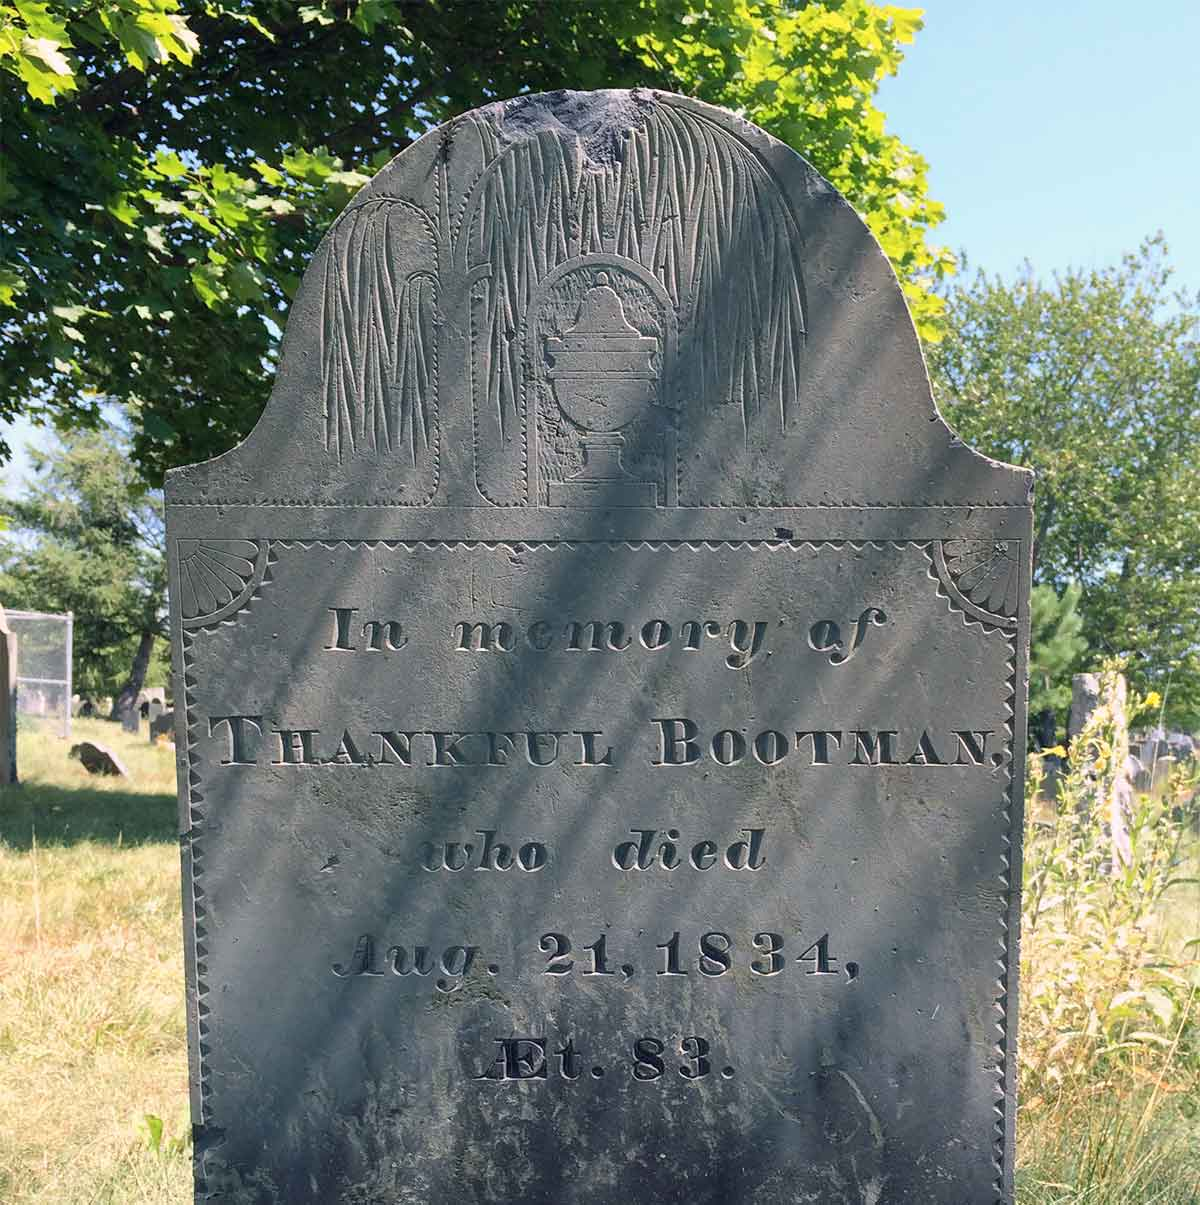 Thankful Bootman slate headstone